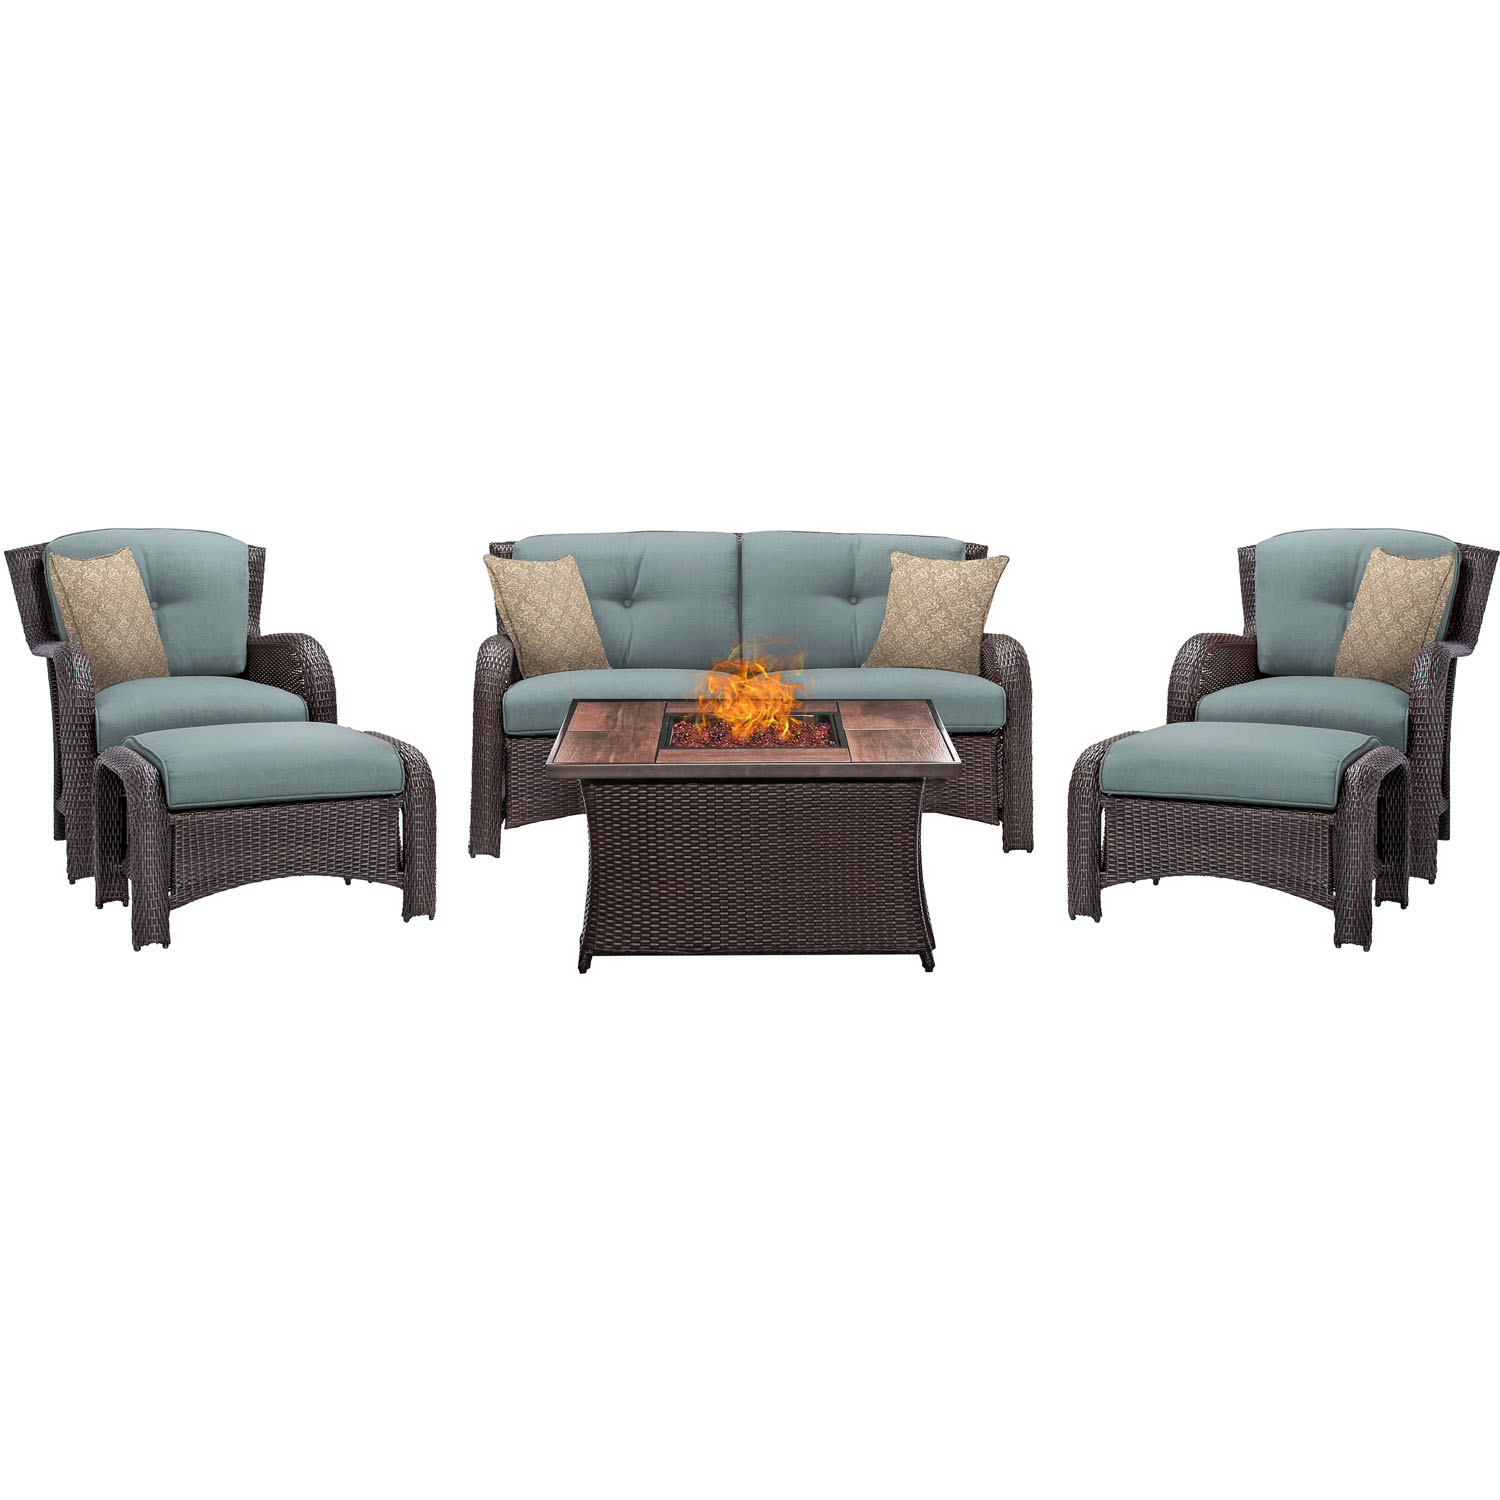 Astonishing Strathmere 6Pc Lounge Set In Ocean Blue With Wood Grain Tile Top Fire Pit Table Strath6Pcfp Blu Wg Squirreltailoven Fun Painted Chair Ideas Images Squirreltailovenorg